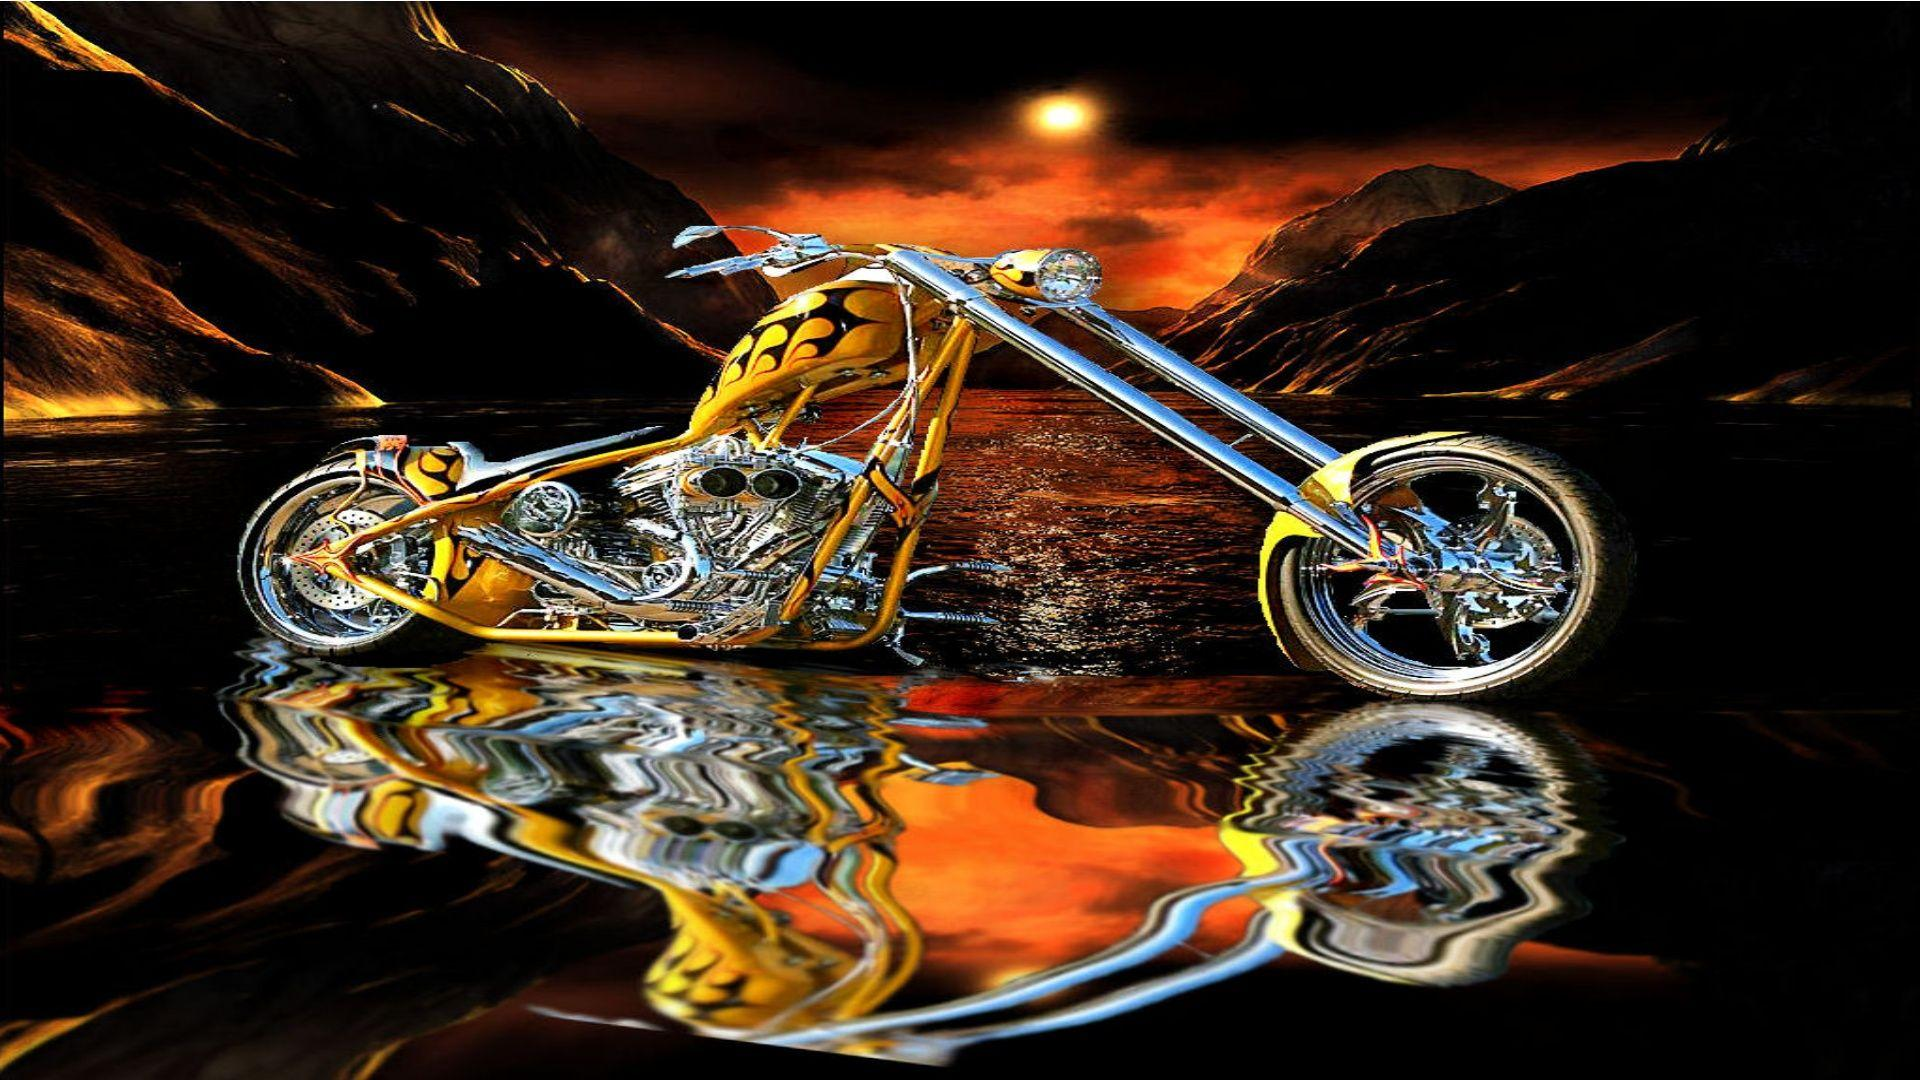 Free HD Choppers wallpapers, West Cost Choppers theme bikes, Amazing